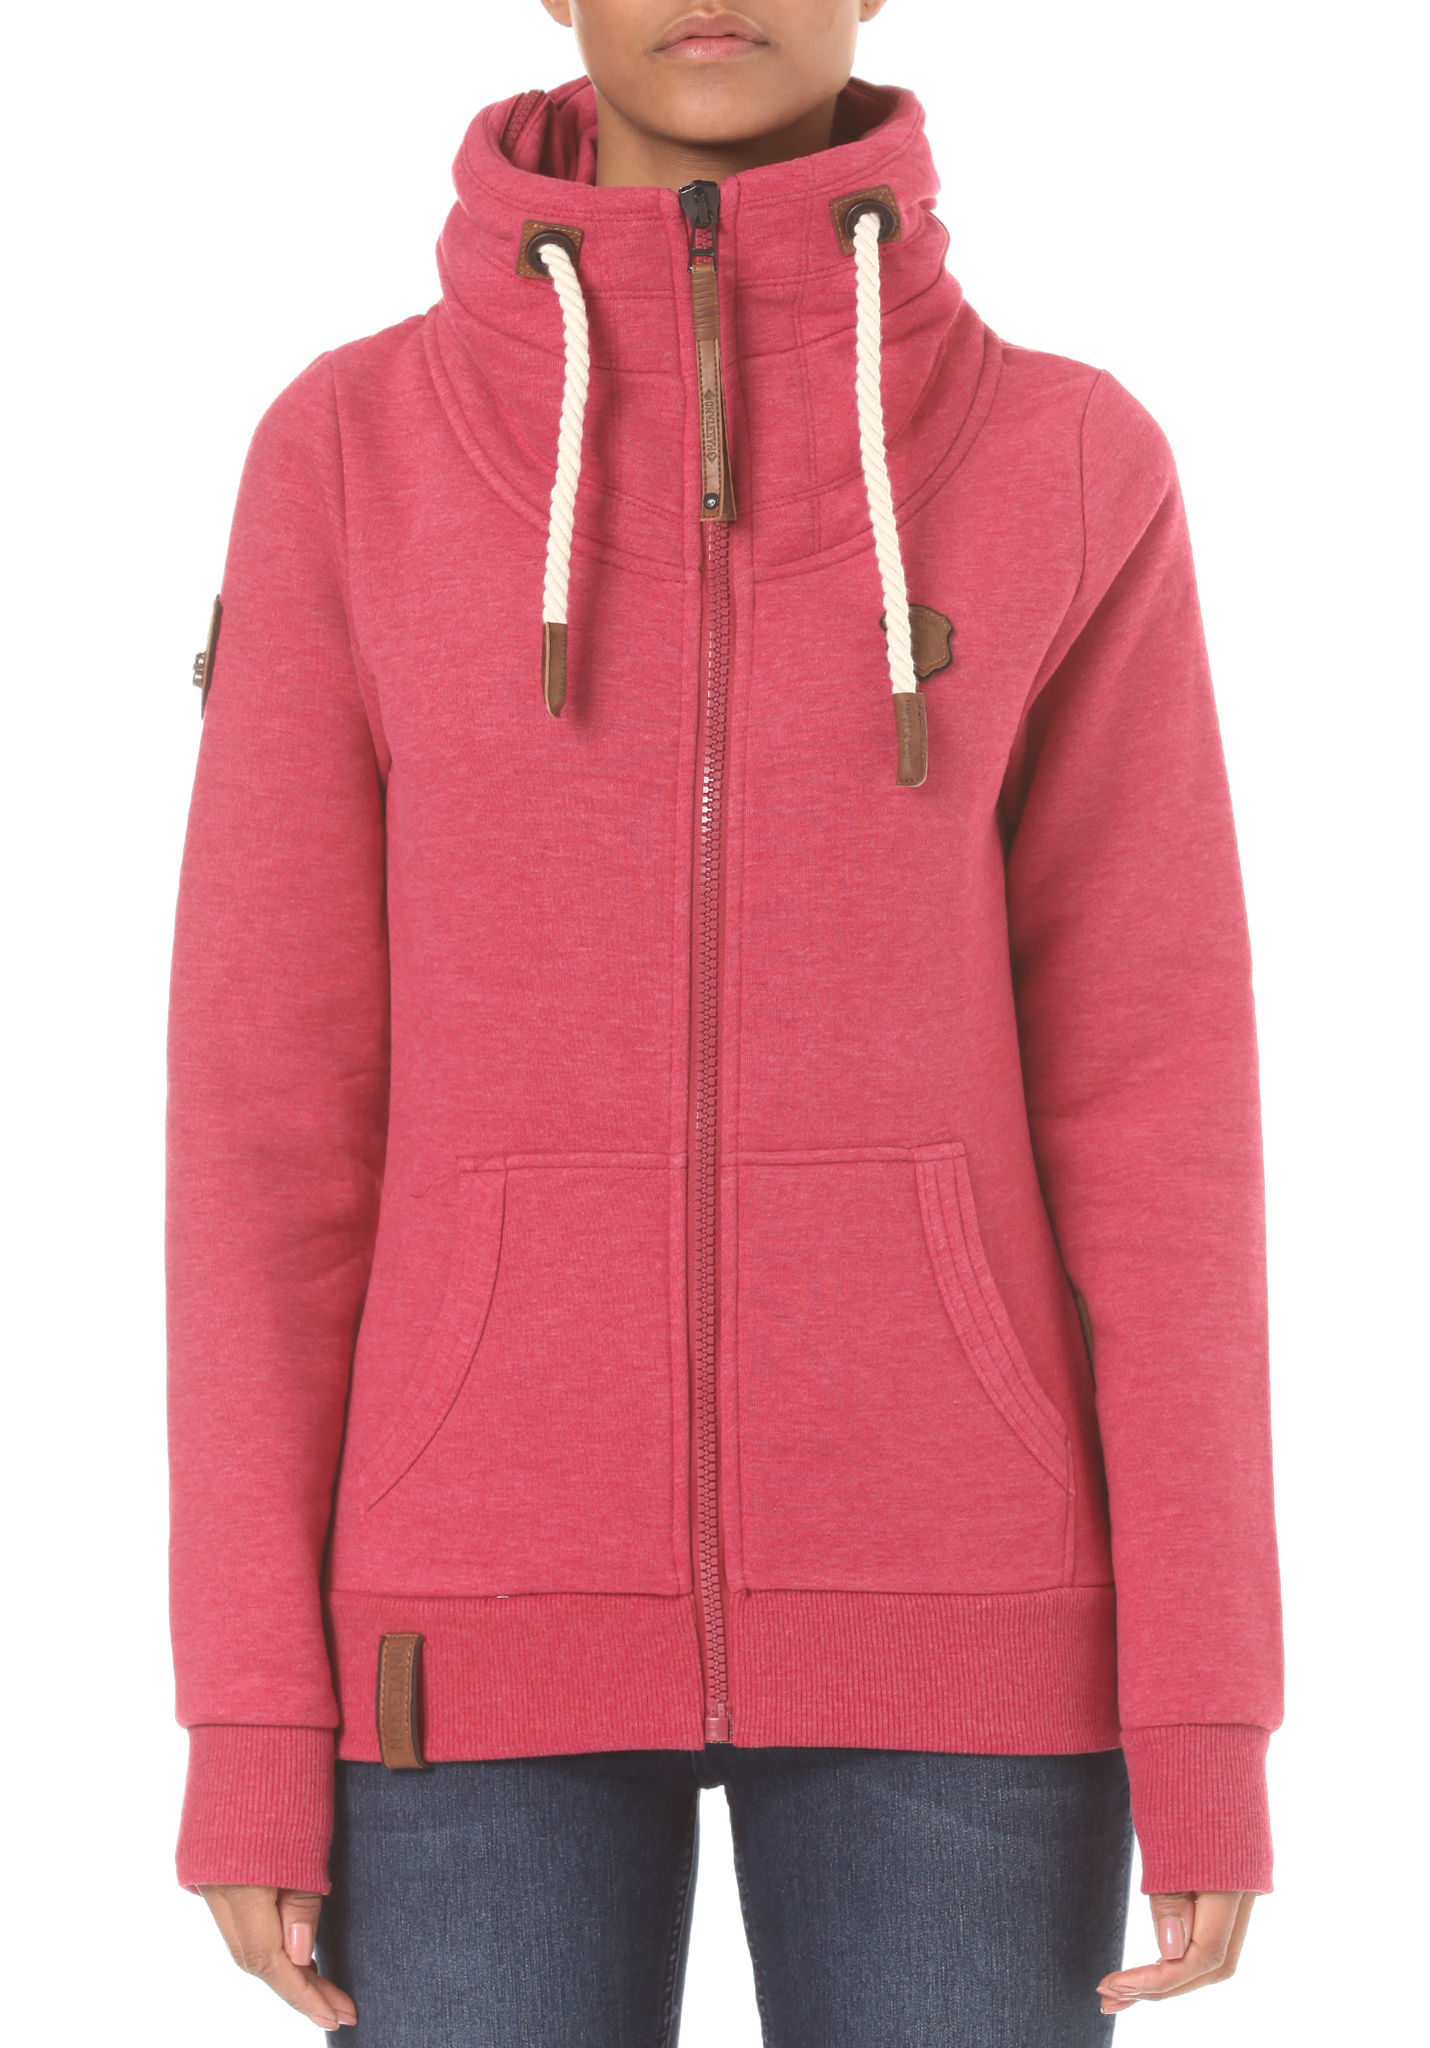 9f42a238114a NAKETANO Monsterbumserin VII - Sweat Jacket for Women - Pink - Planet Sports